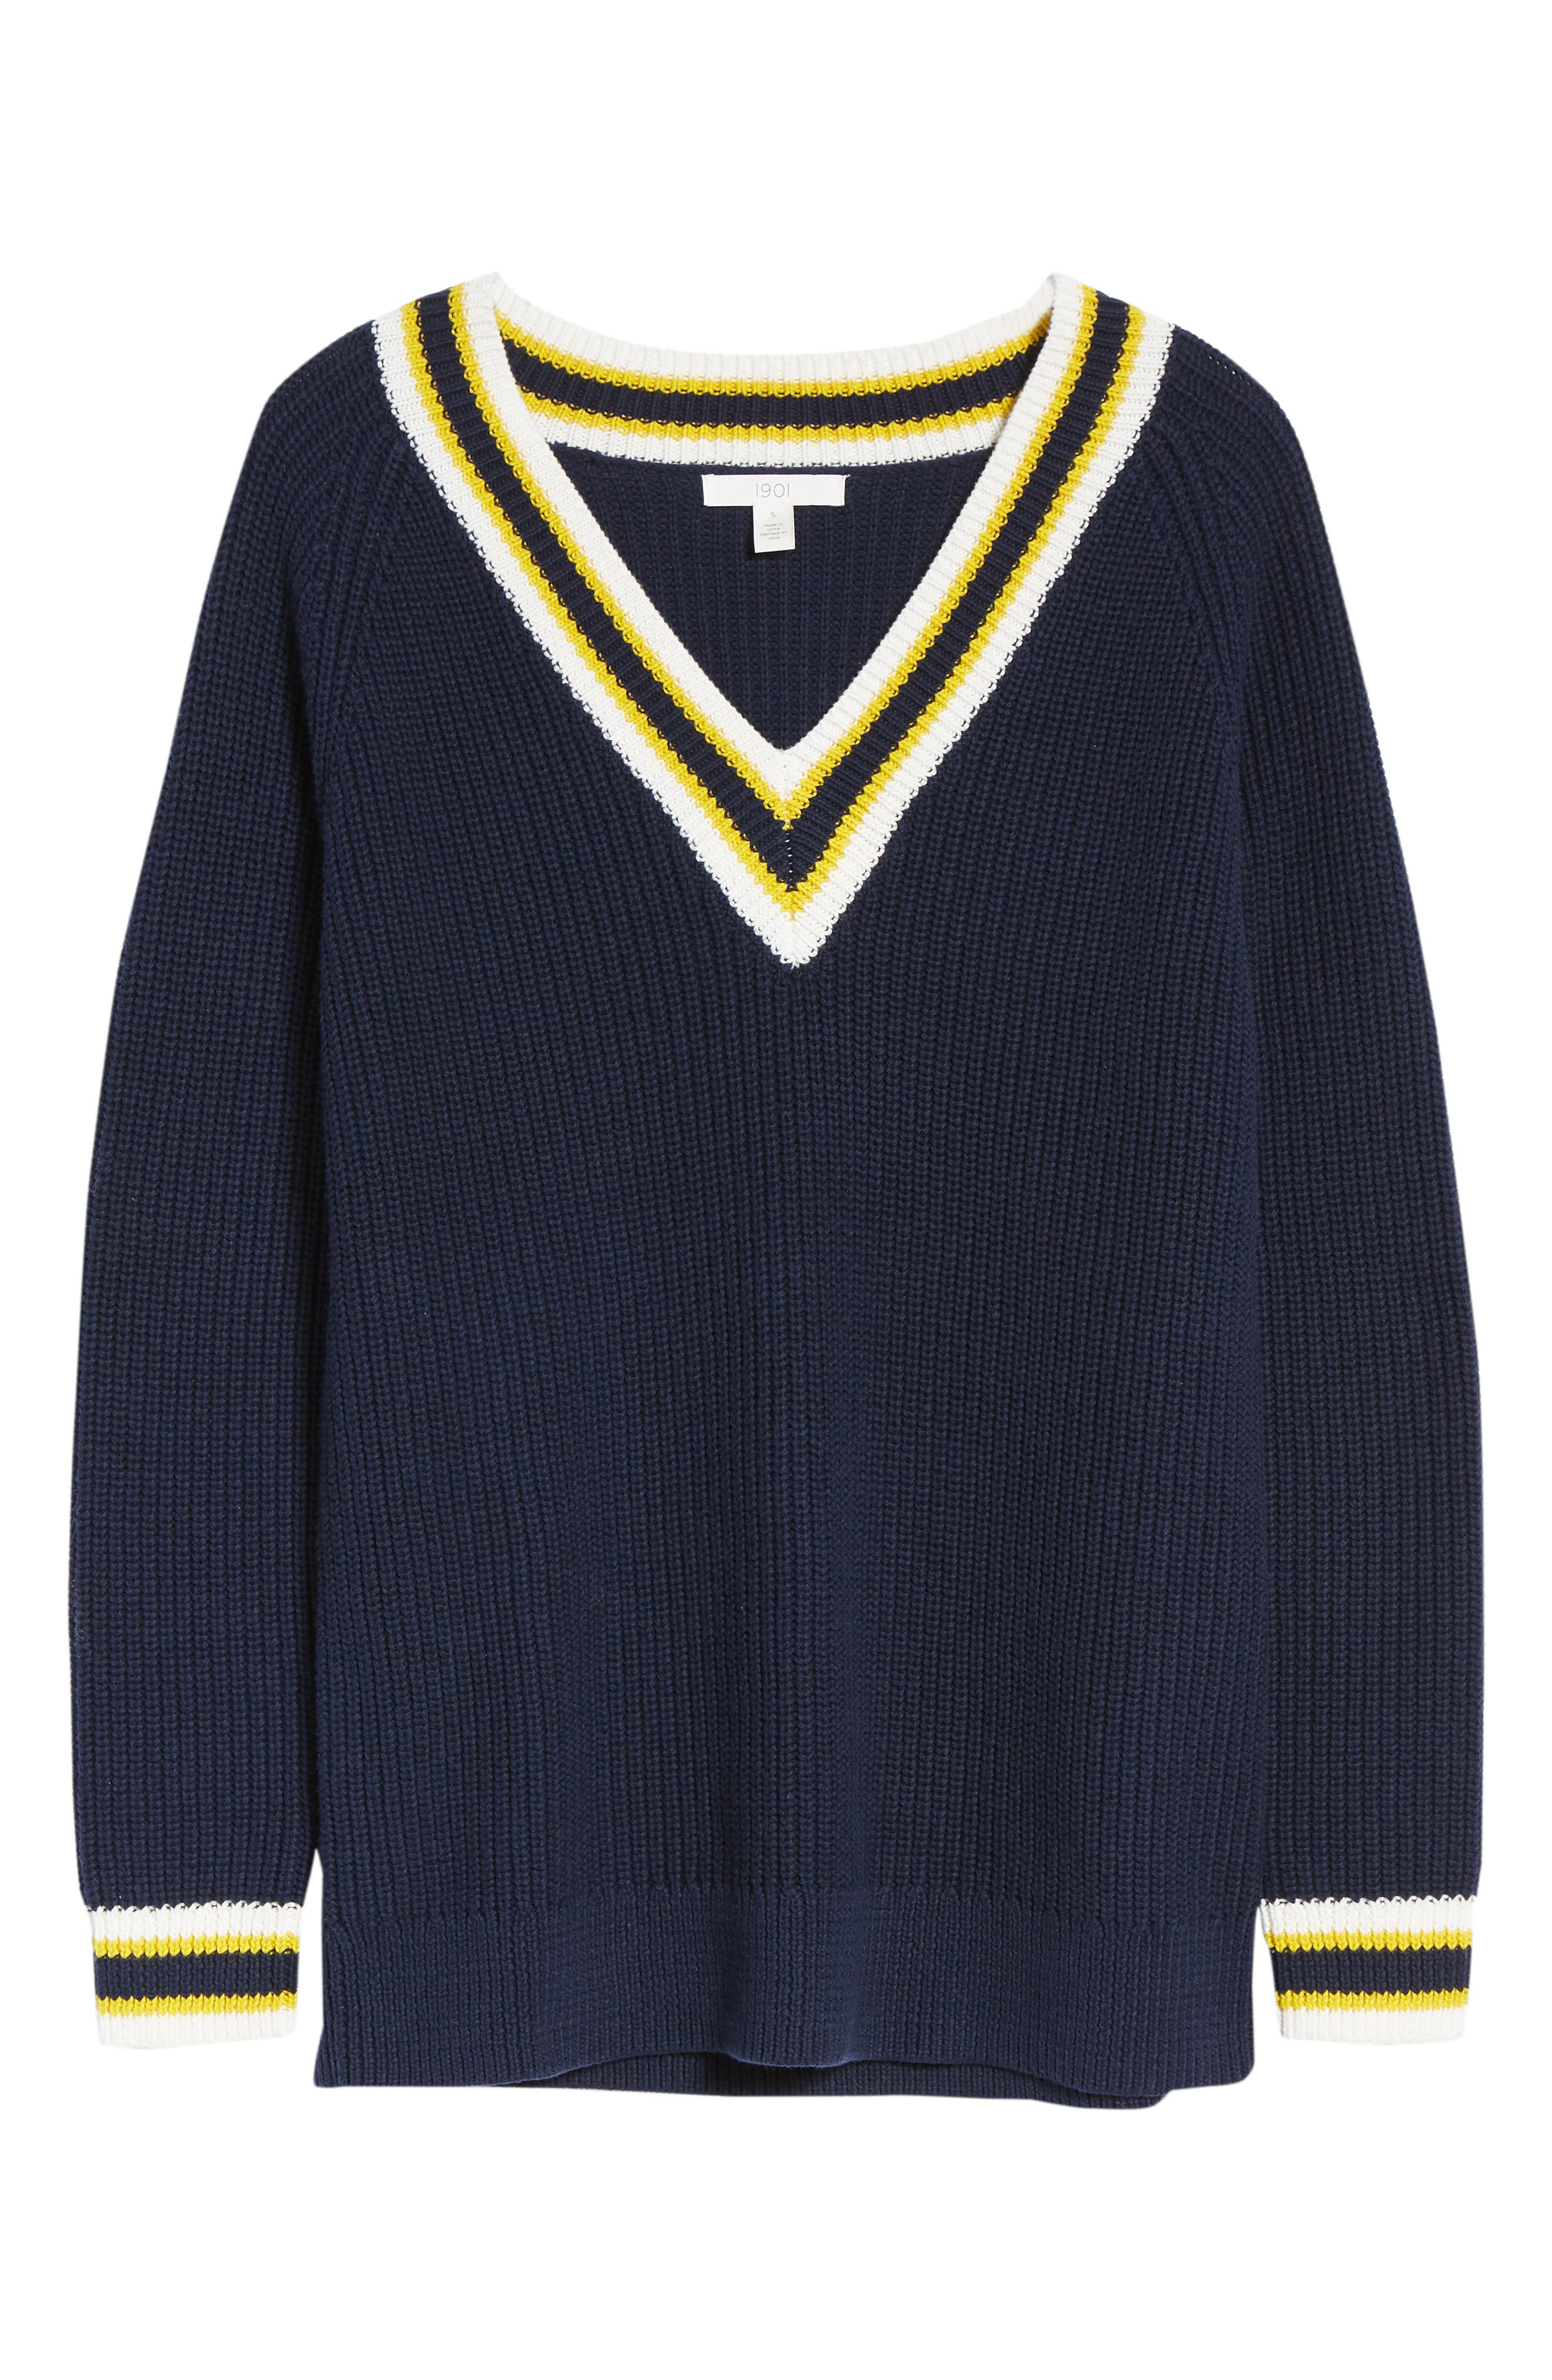 Tennis Sweater,                             Alternate thumbnail 7, color,                             410